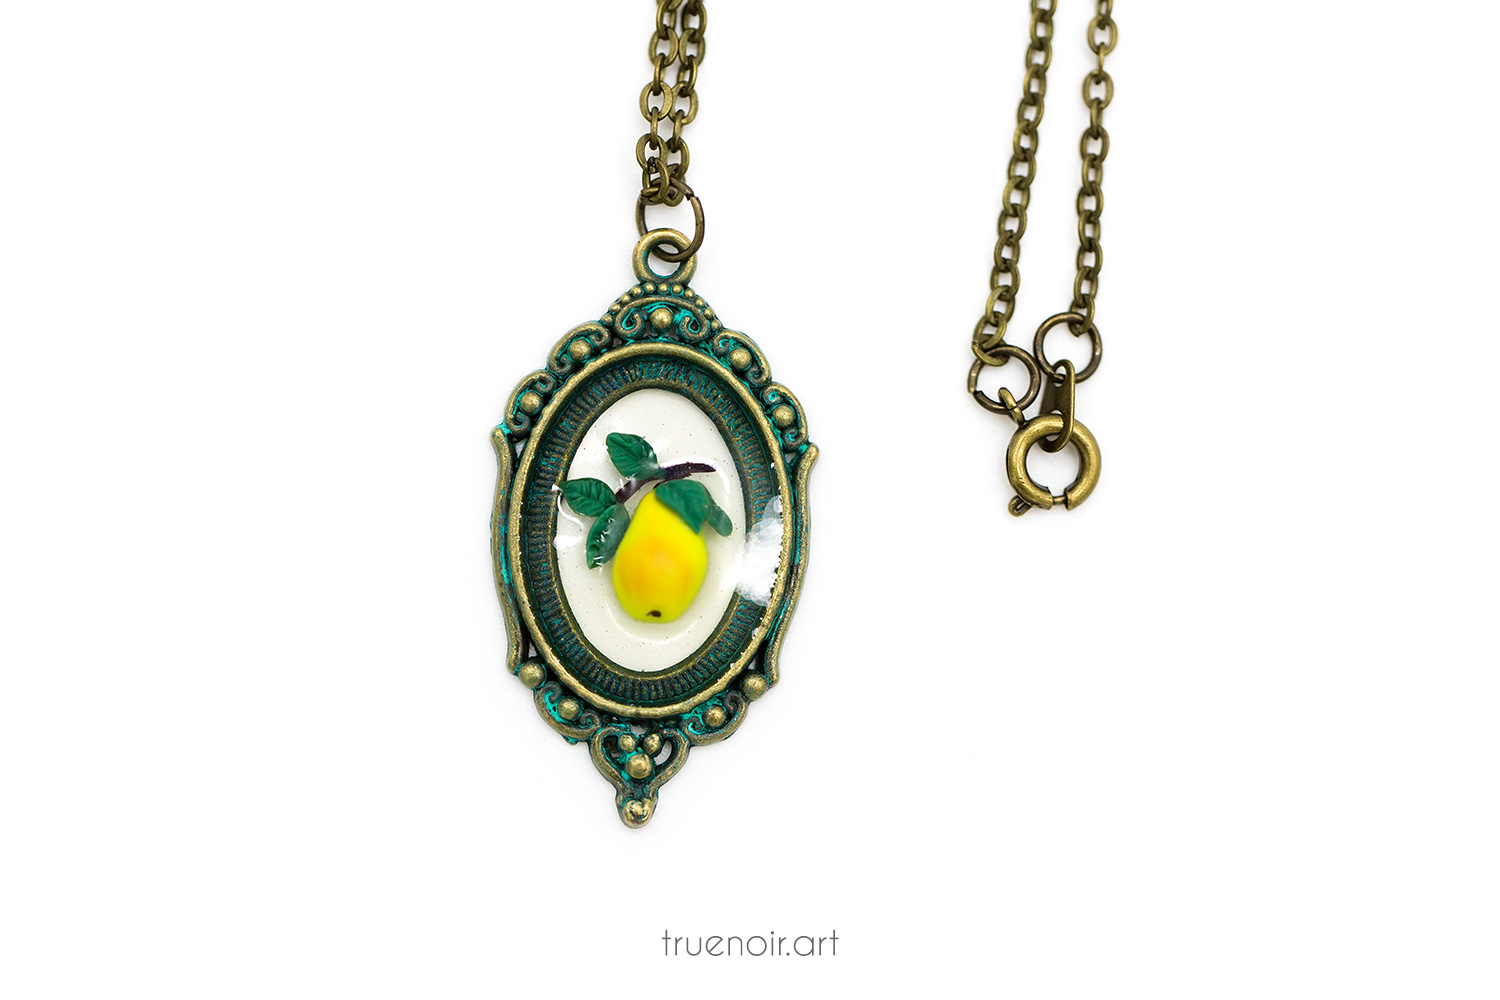 Floating pear pendant and necklace closure.